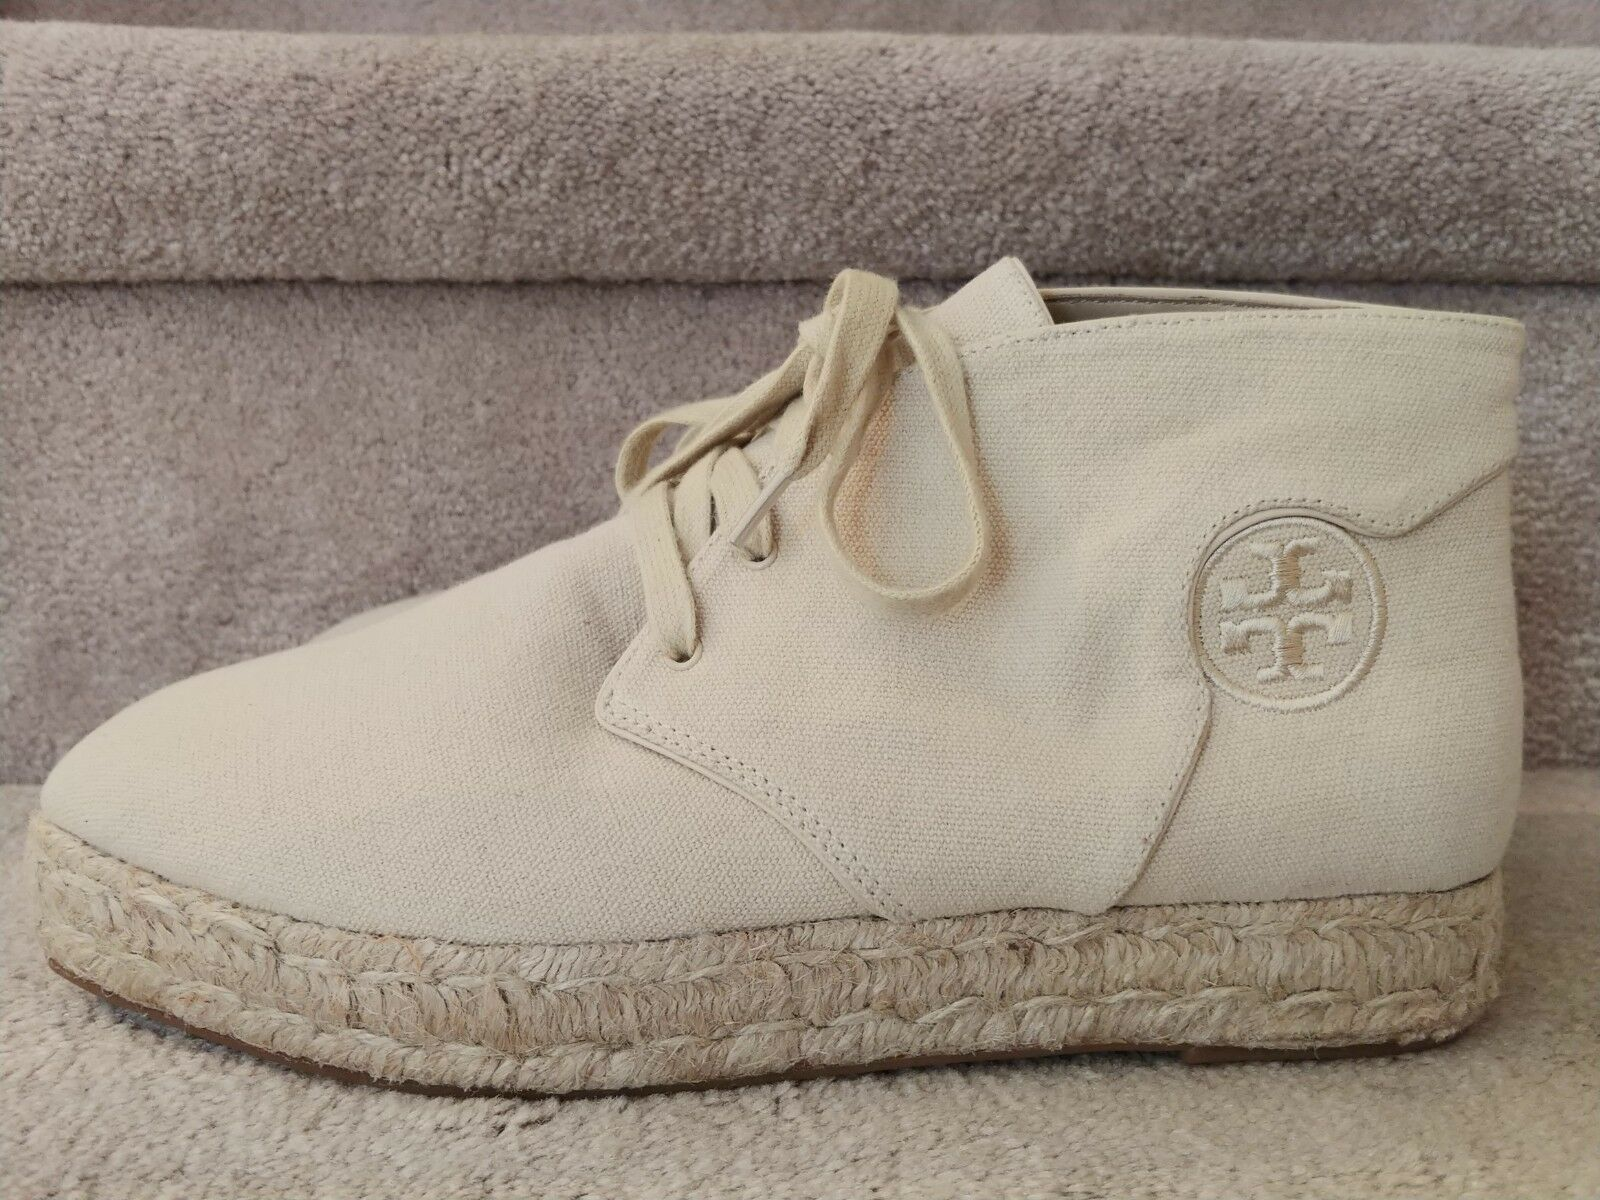 Tory Burch Canvas Dulce de Leche Rios Espadrille Lace up Bootie NEW Size 9